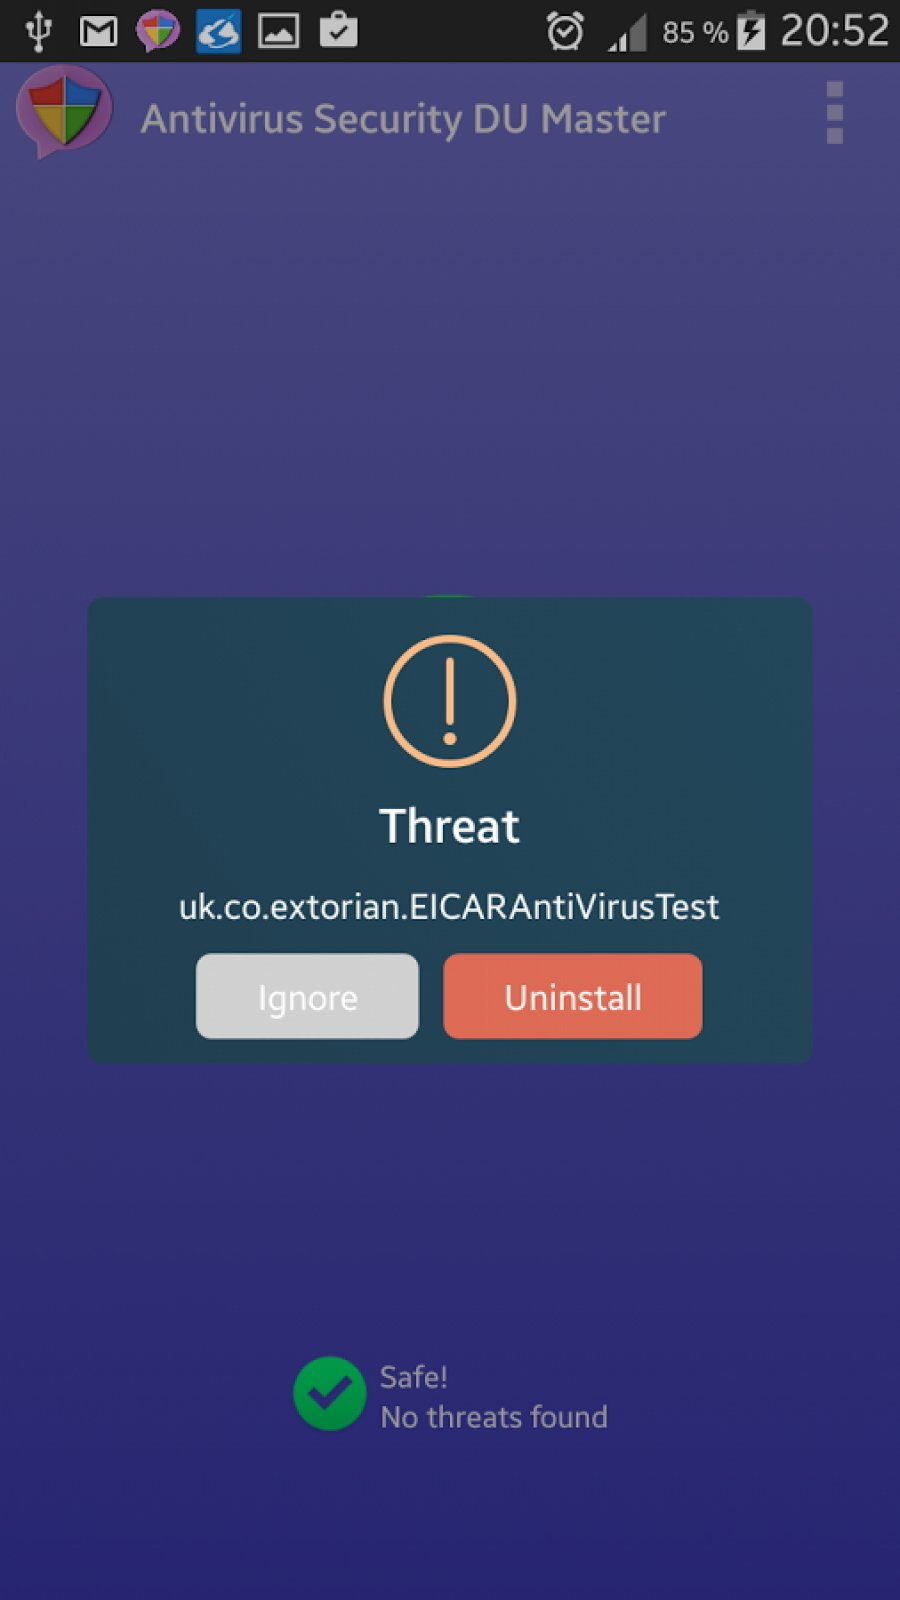 Antivirus Security Master Android App APK (com.du.master.antivirus.security.android) by Du Master - Download on PHONEKY